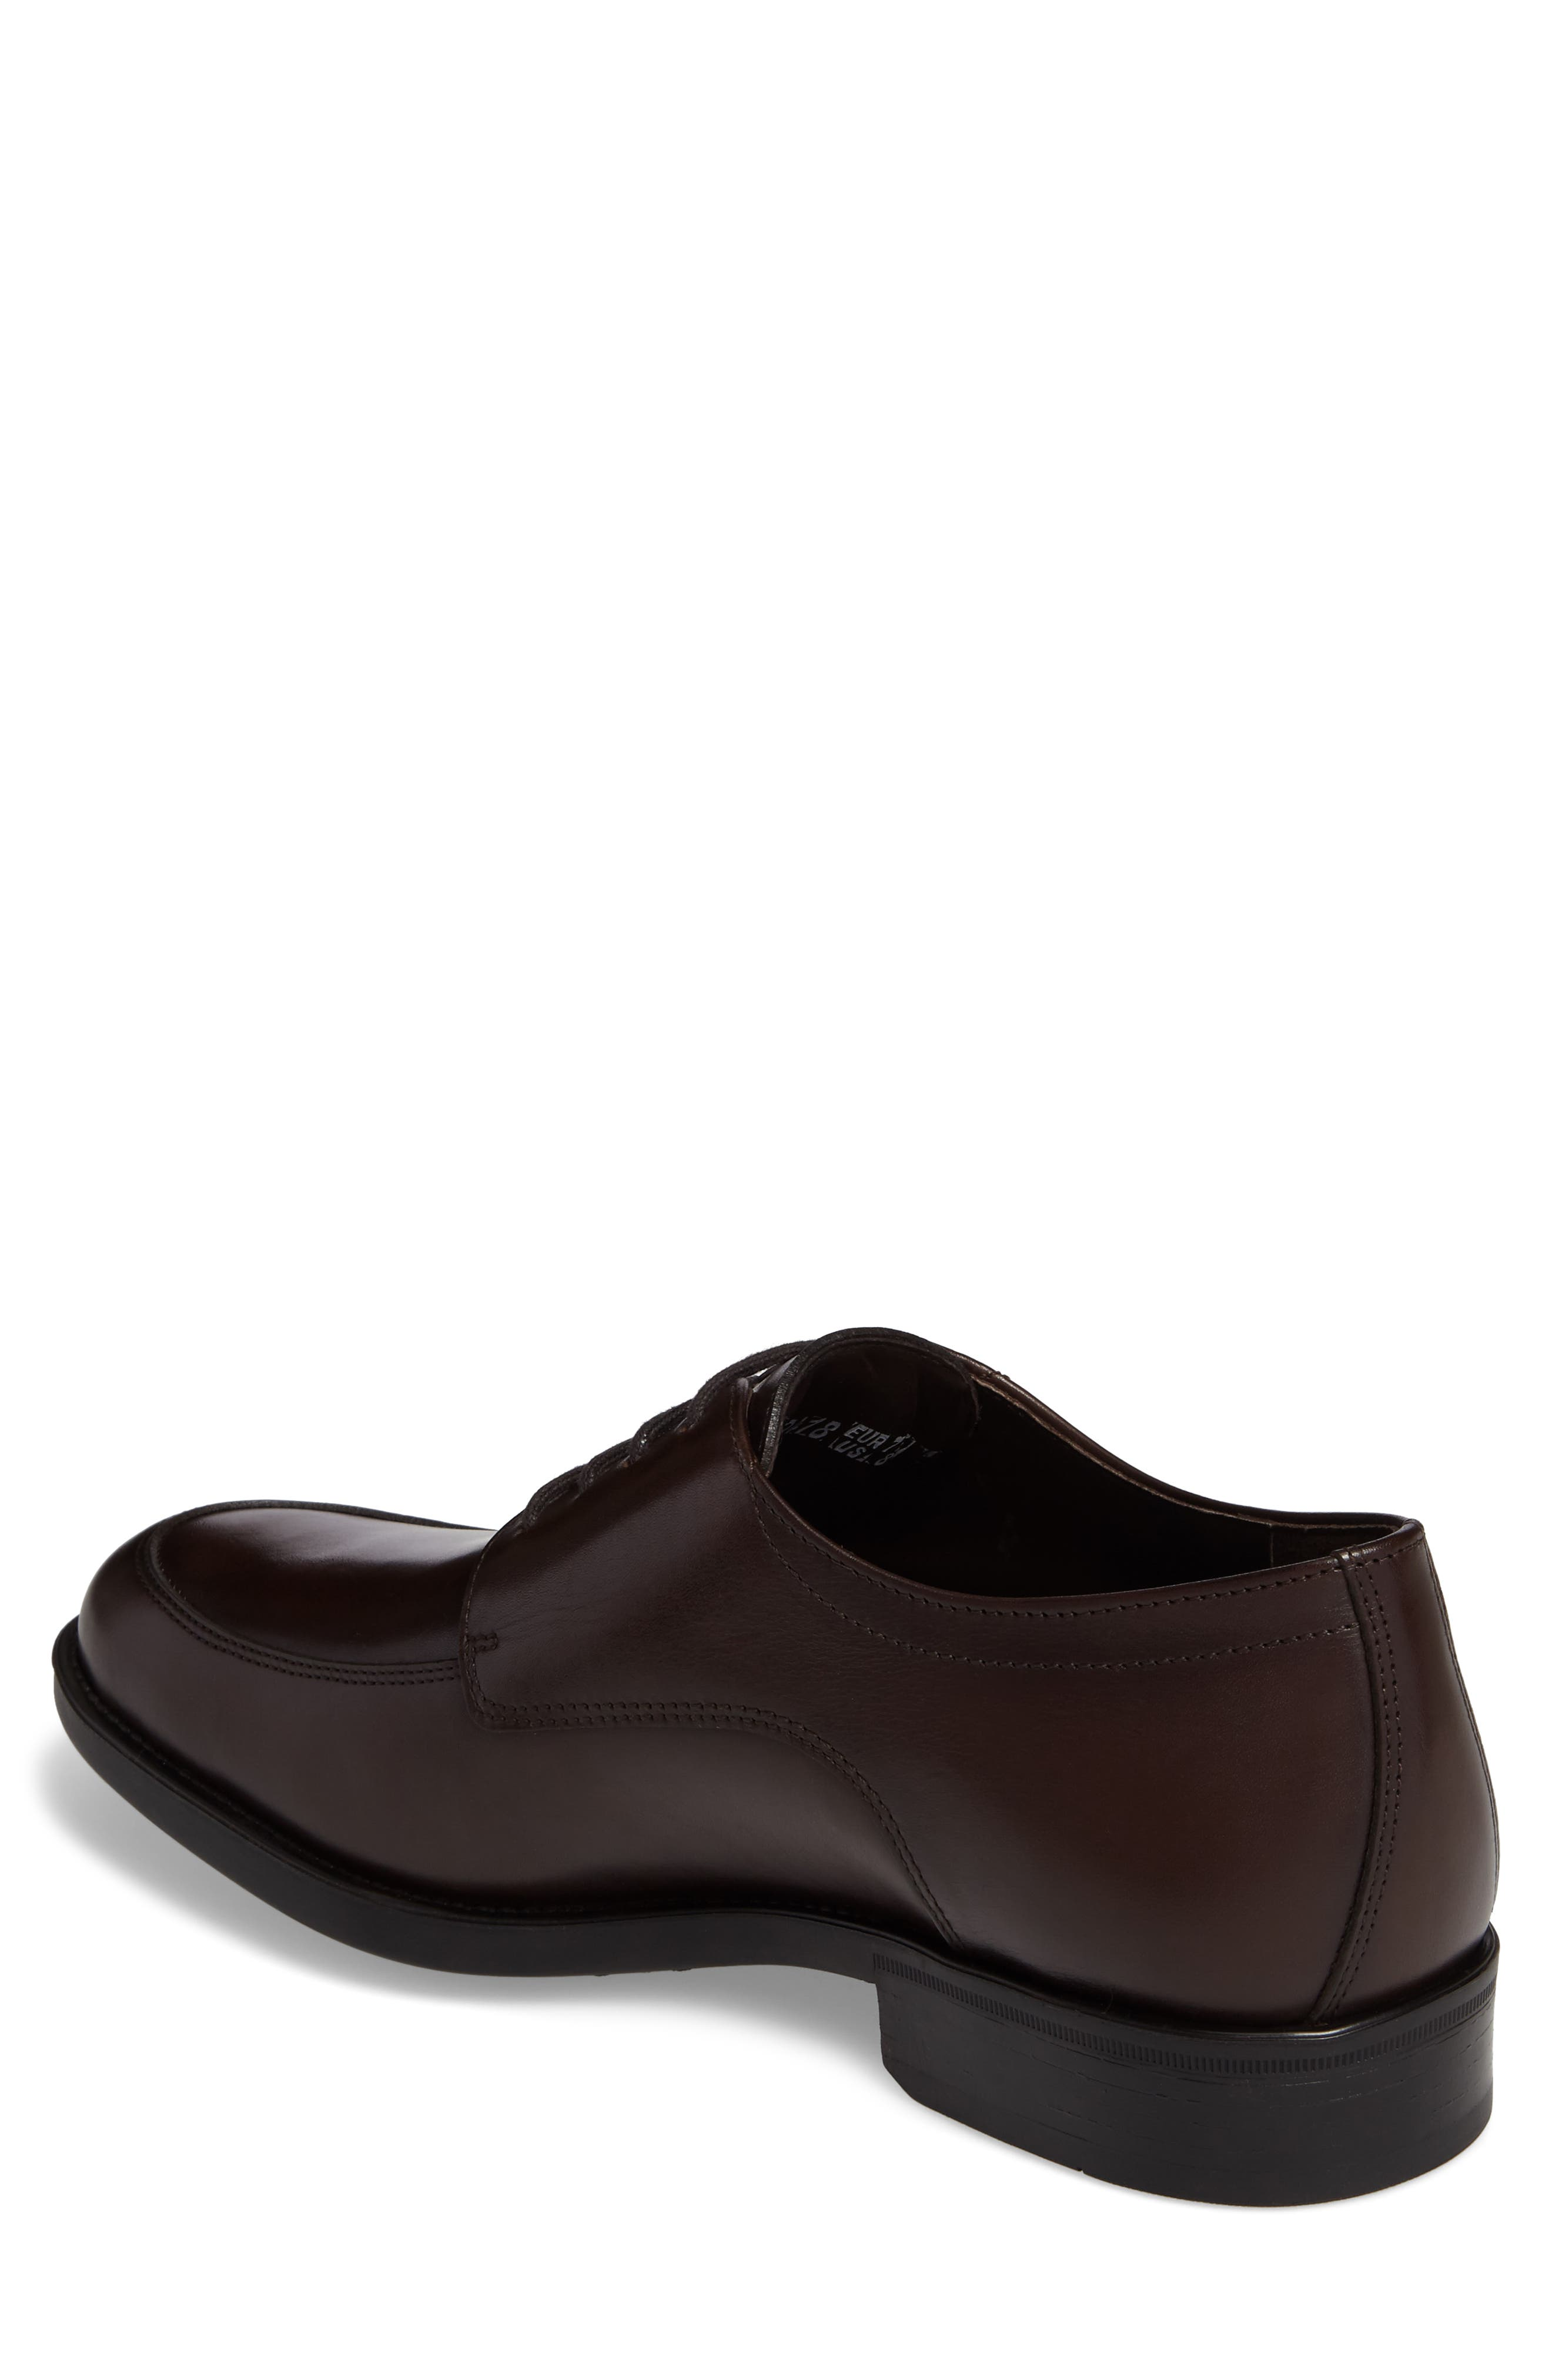 Carlo Moc Toe Derby,                             Alternate thumbnail 2, color,                             DARK BROWN LEATHER